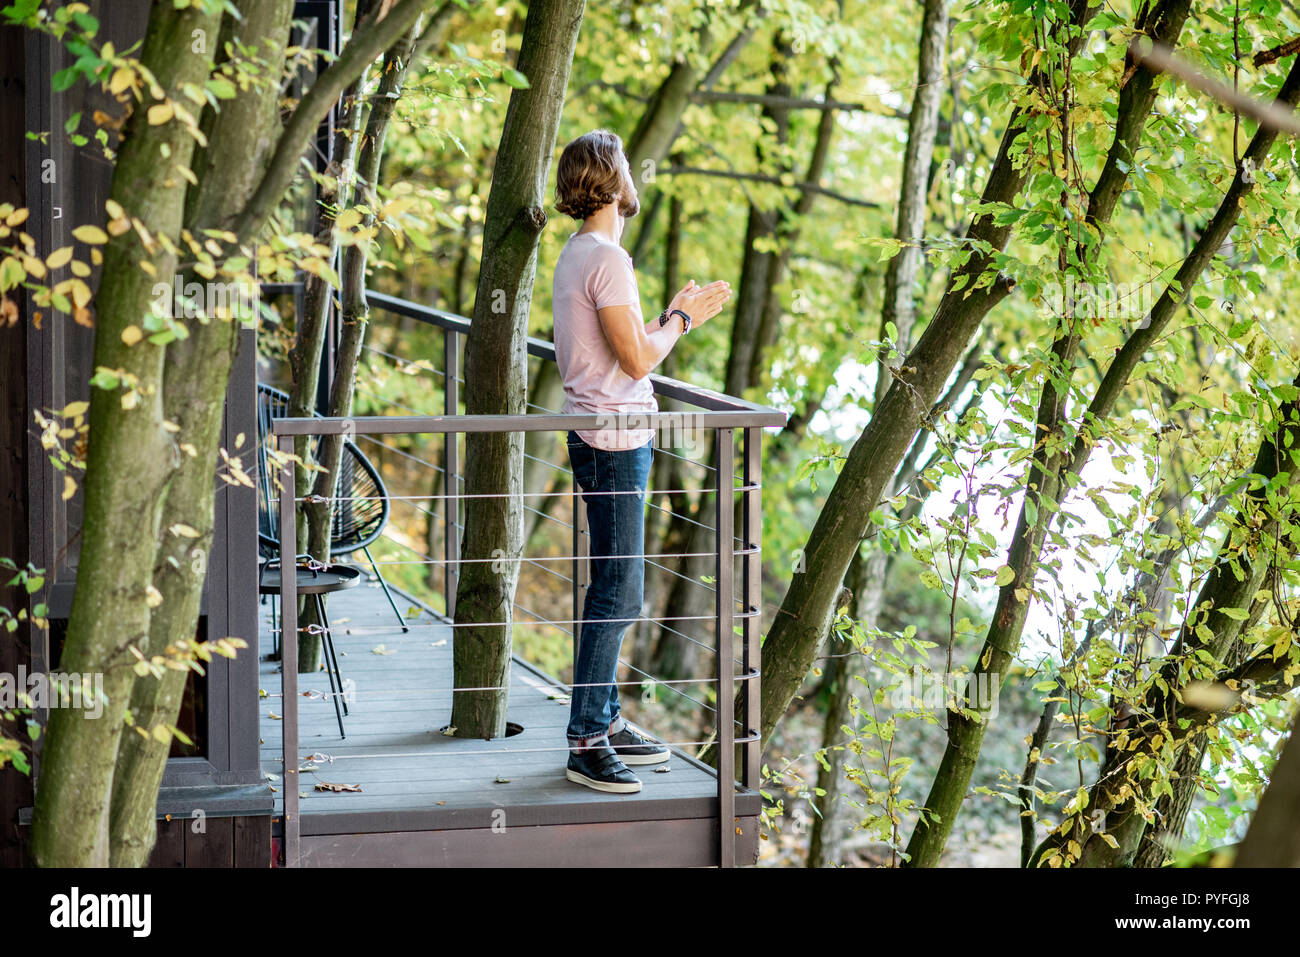 Portrait Of A Handsome Man On The Balcony Of The House In The Beautiful Forest Stock Photo Alamy